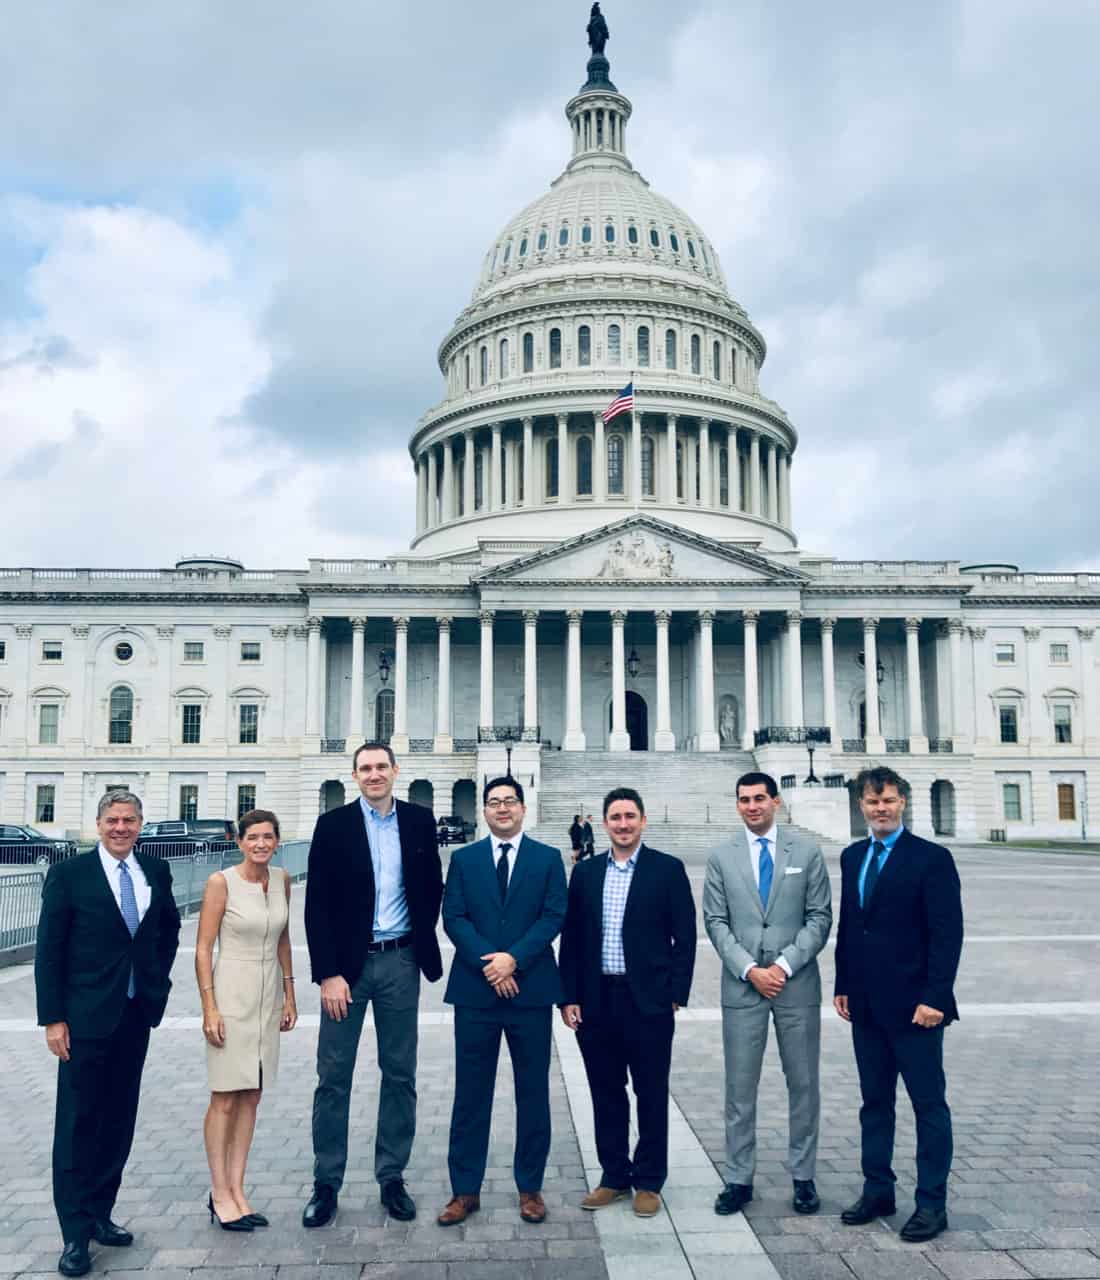 Association of Online Investment Platforms Visits Capitol Hill to Discuss Crowdfunding Exemptions & More with House & Senate Staffers